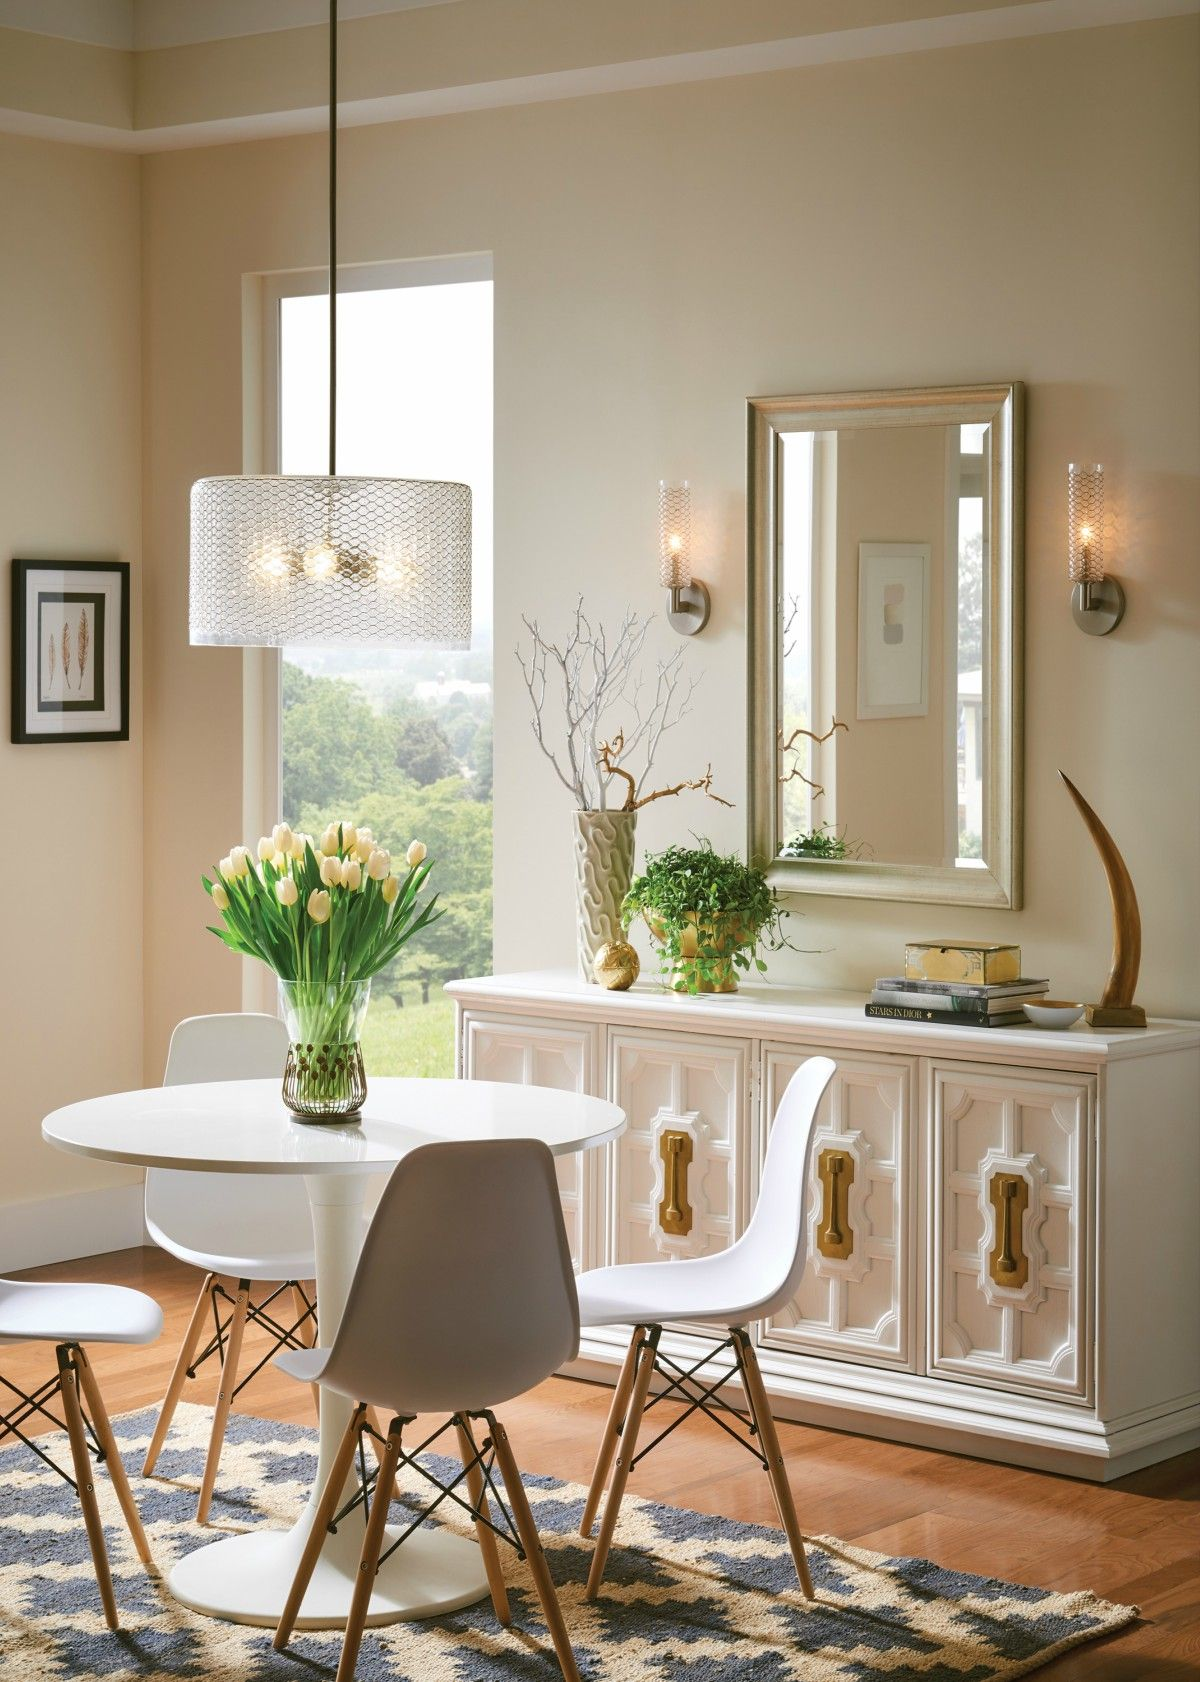 what are your thoughts on this dining room arrangement featured rh pinterest com